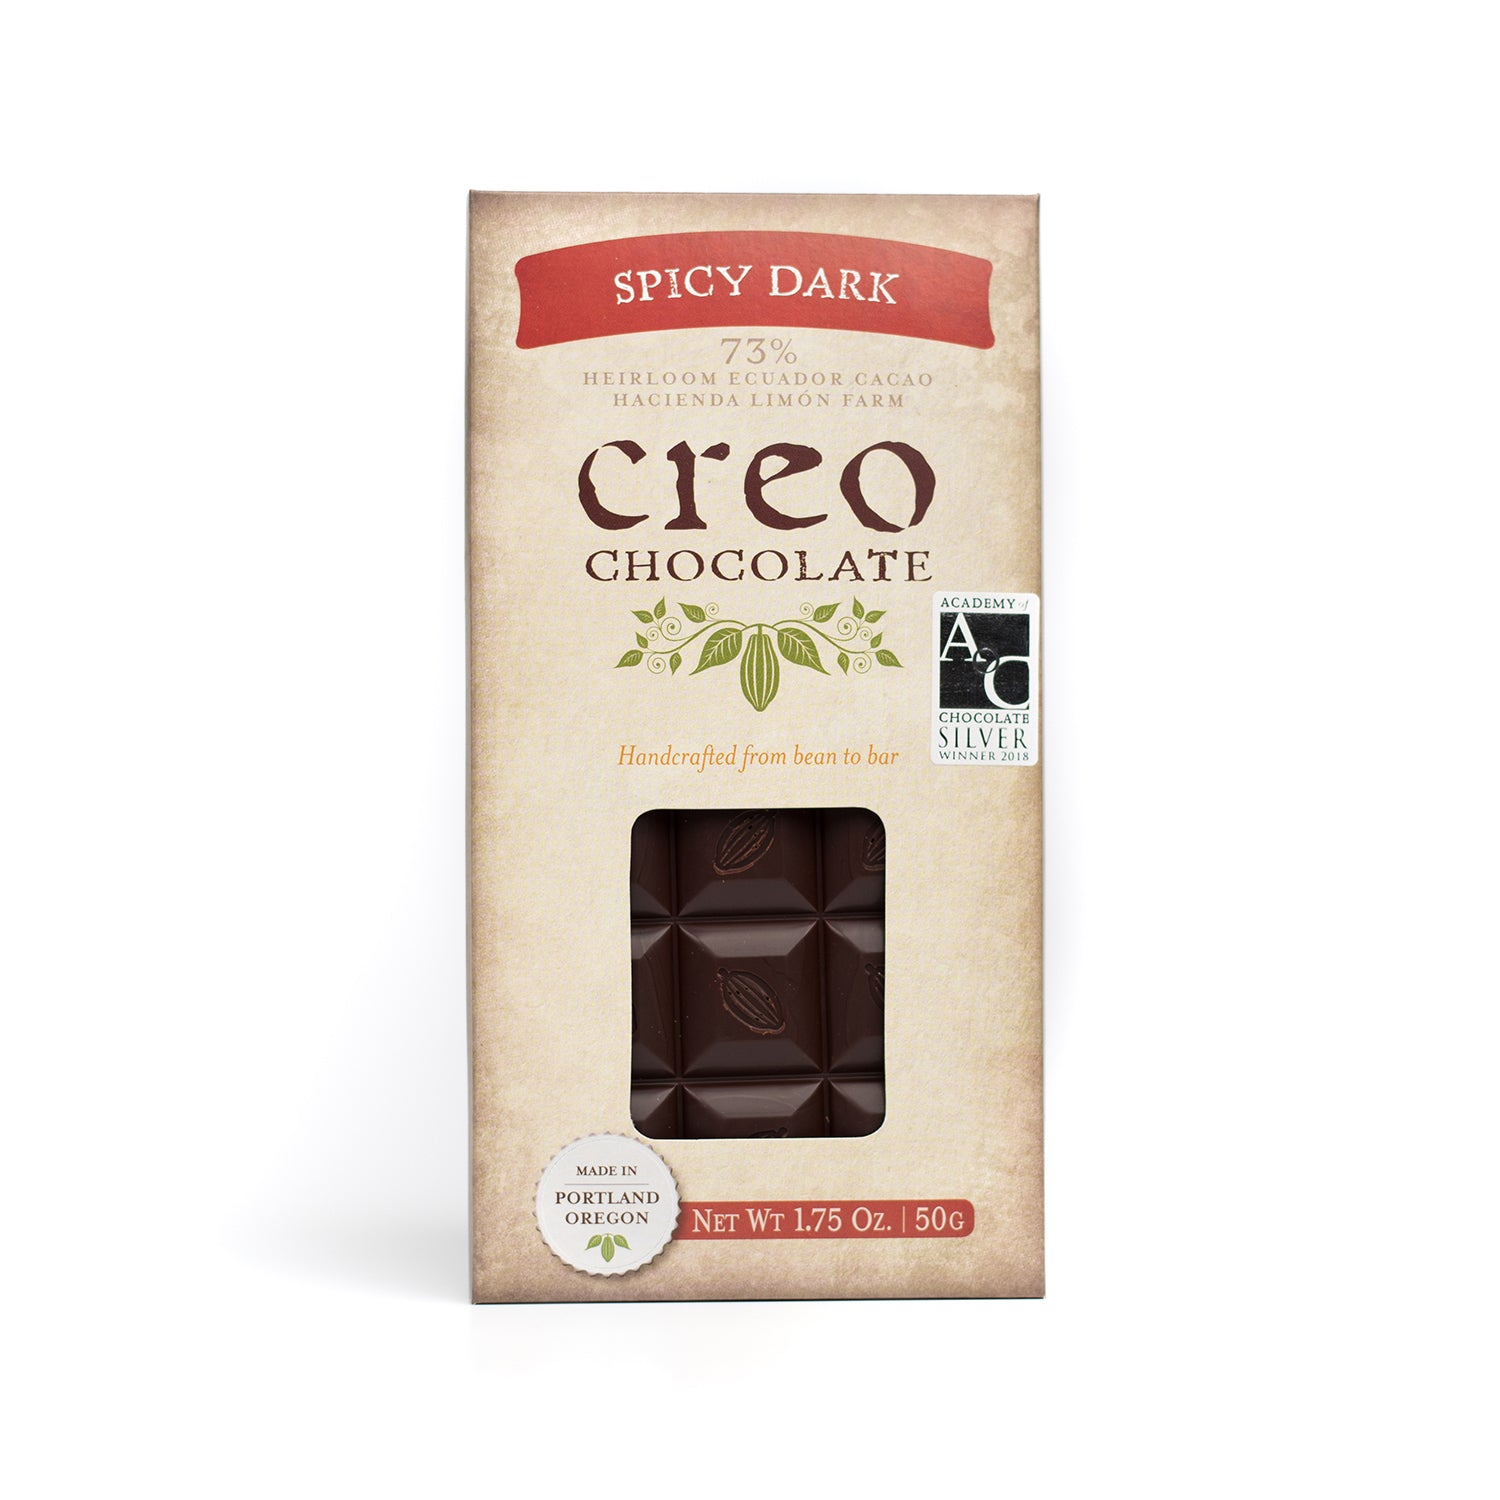 Spicy Dark - Creo Chocolate